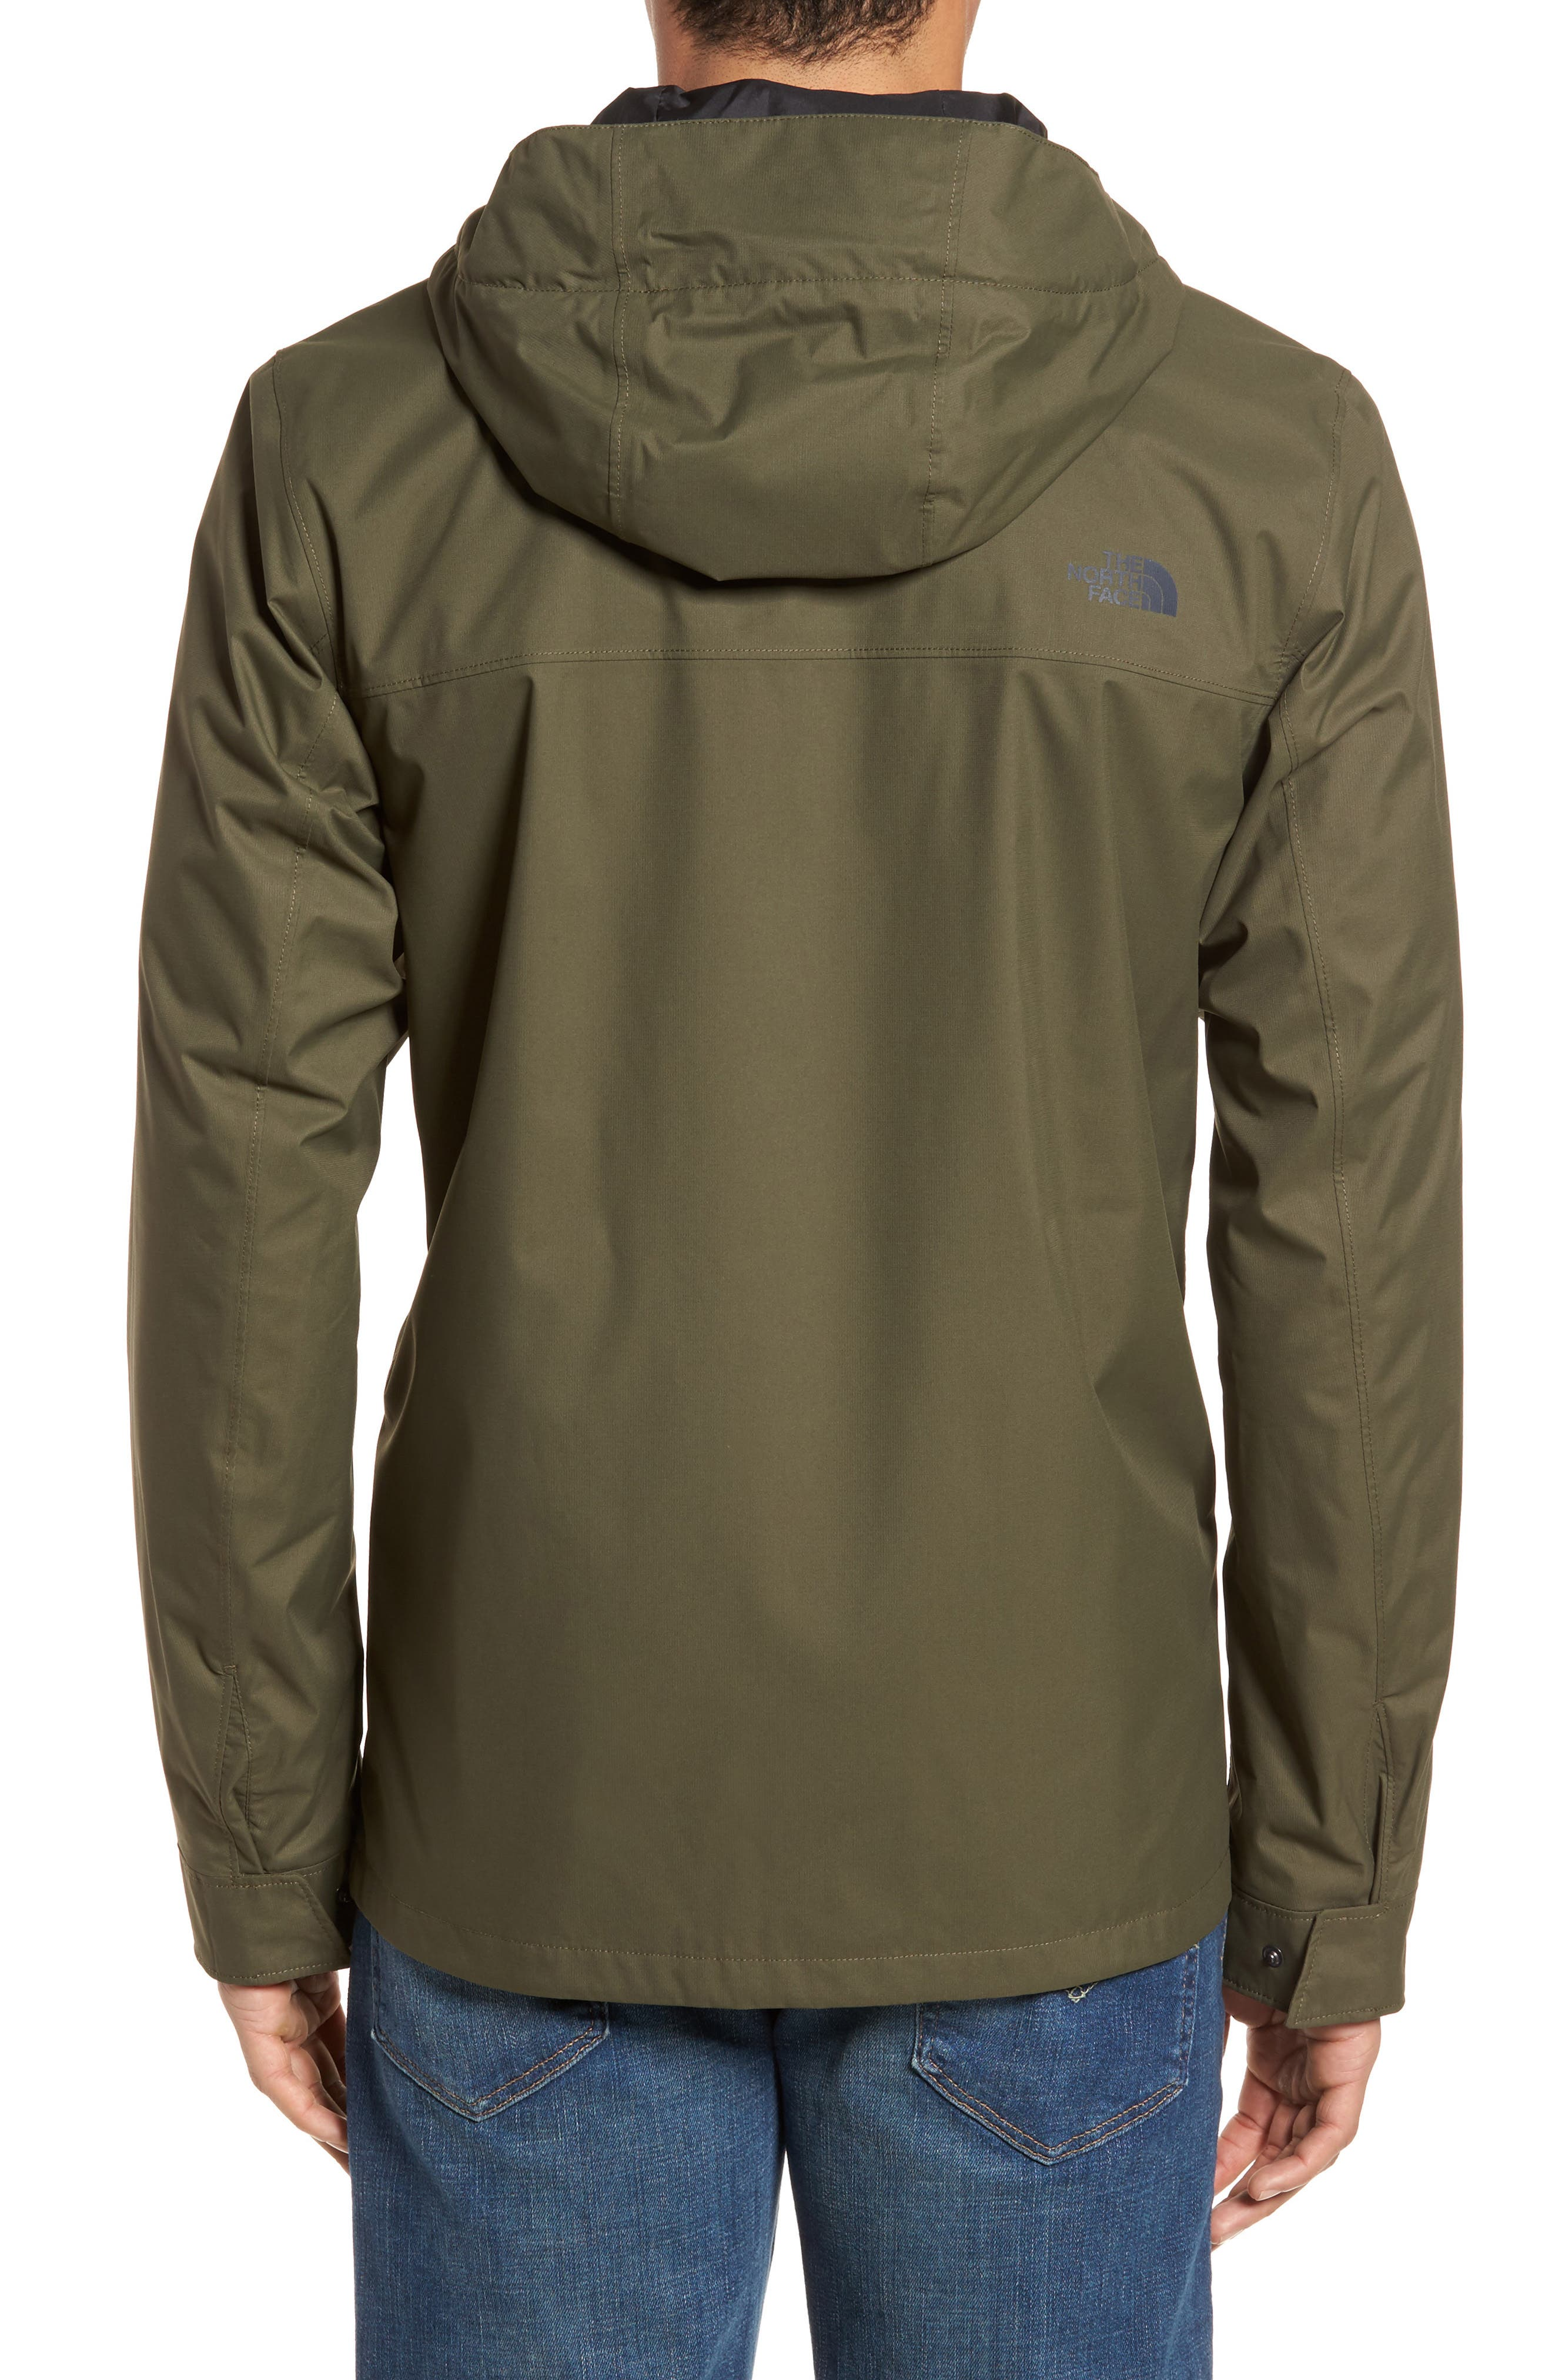 Jenison II Insulated Waterproof Jacket,                             Alternate thumbnail 2, color,                             New Taupe Green